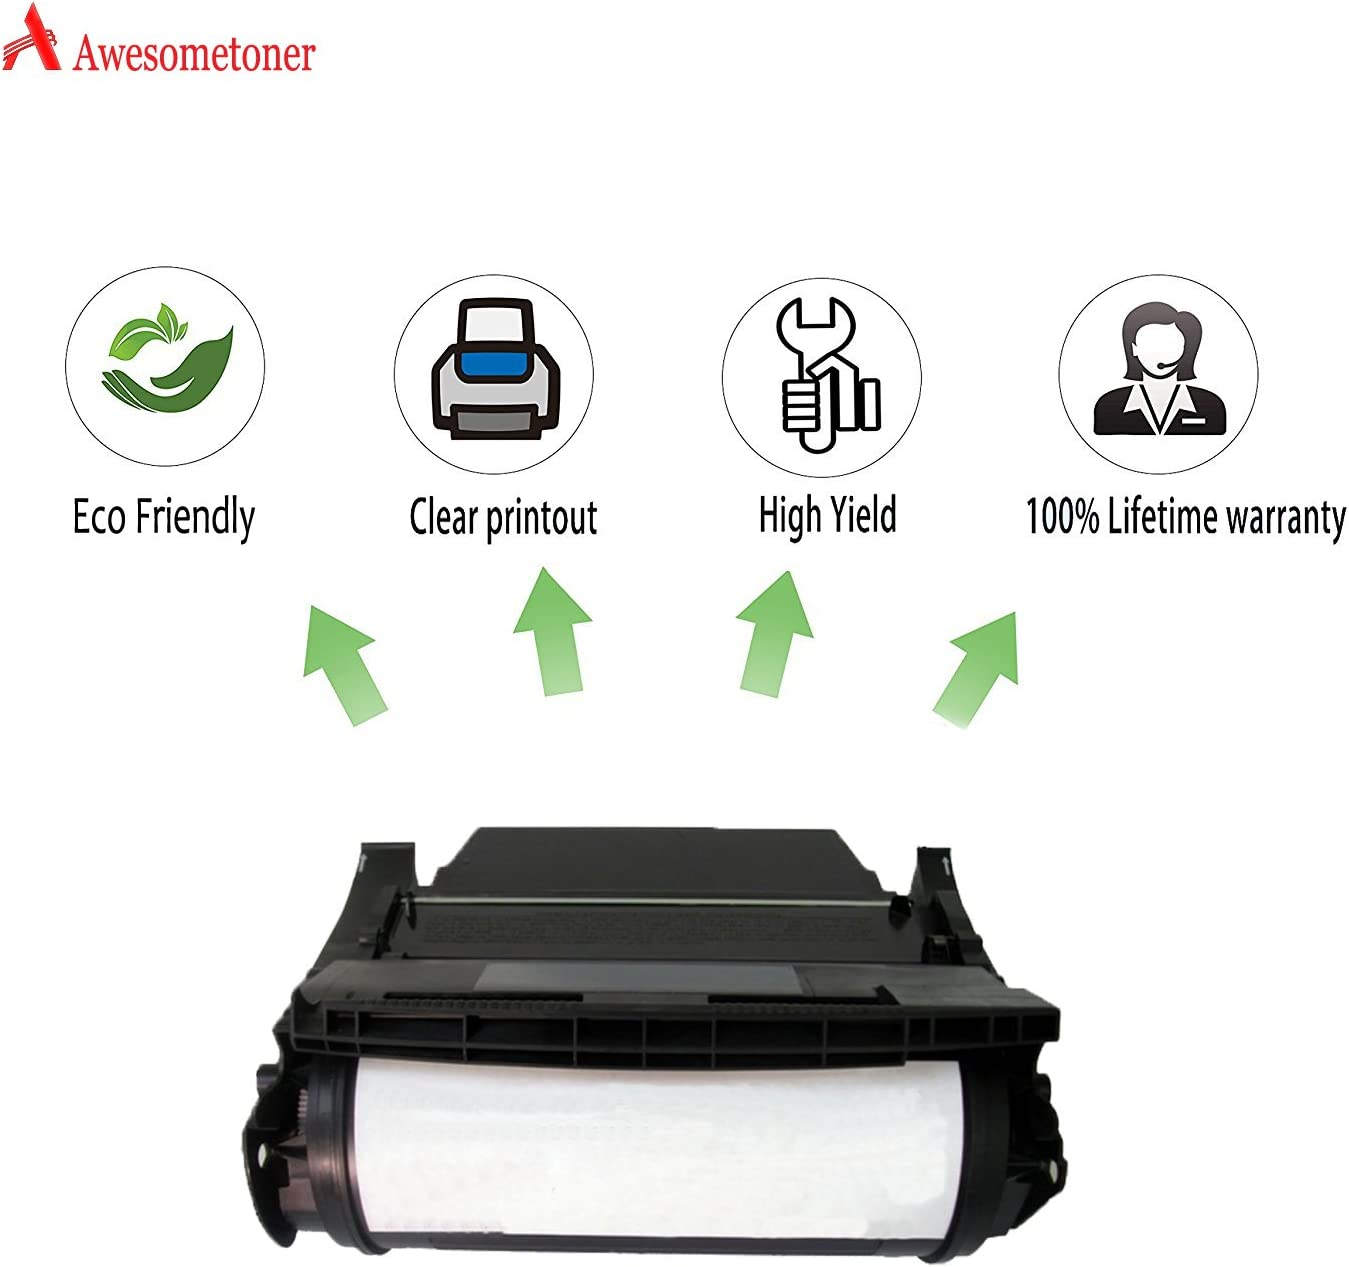 T620dn T620in Black, 3-Pack T620n Awesometoner Remanufactured Made in USA Toner Cartridge Replacement for Lexmark 12A6865 T620 use with T620